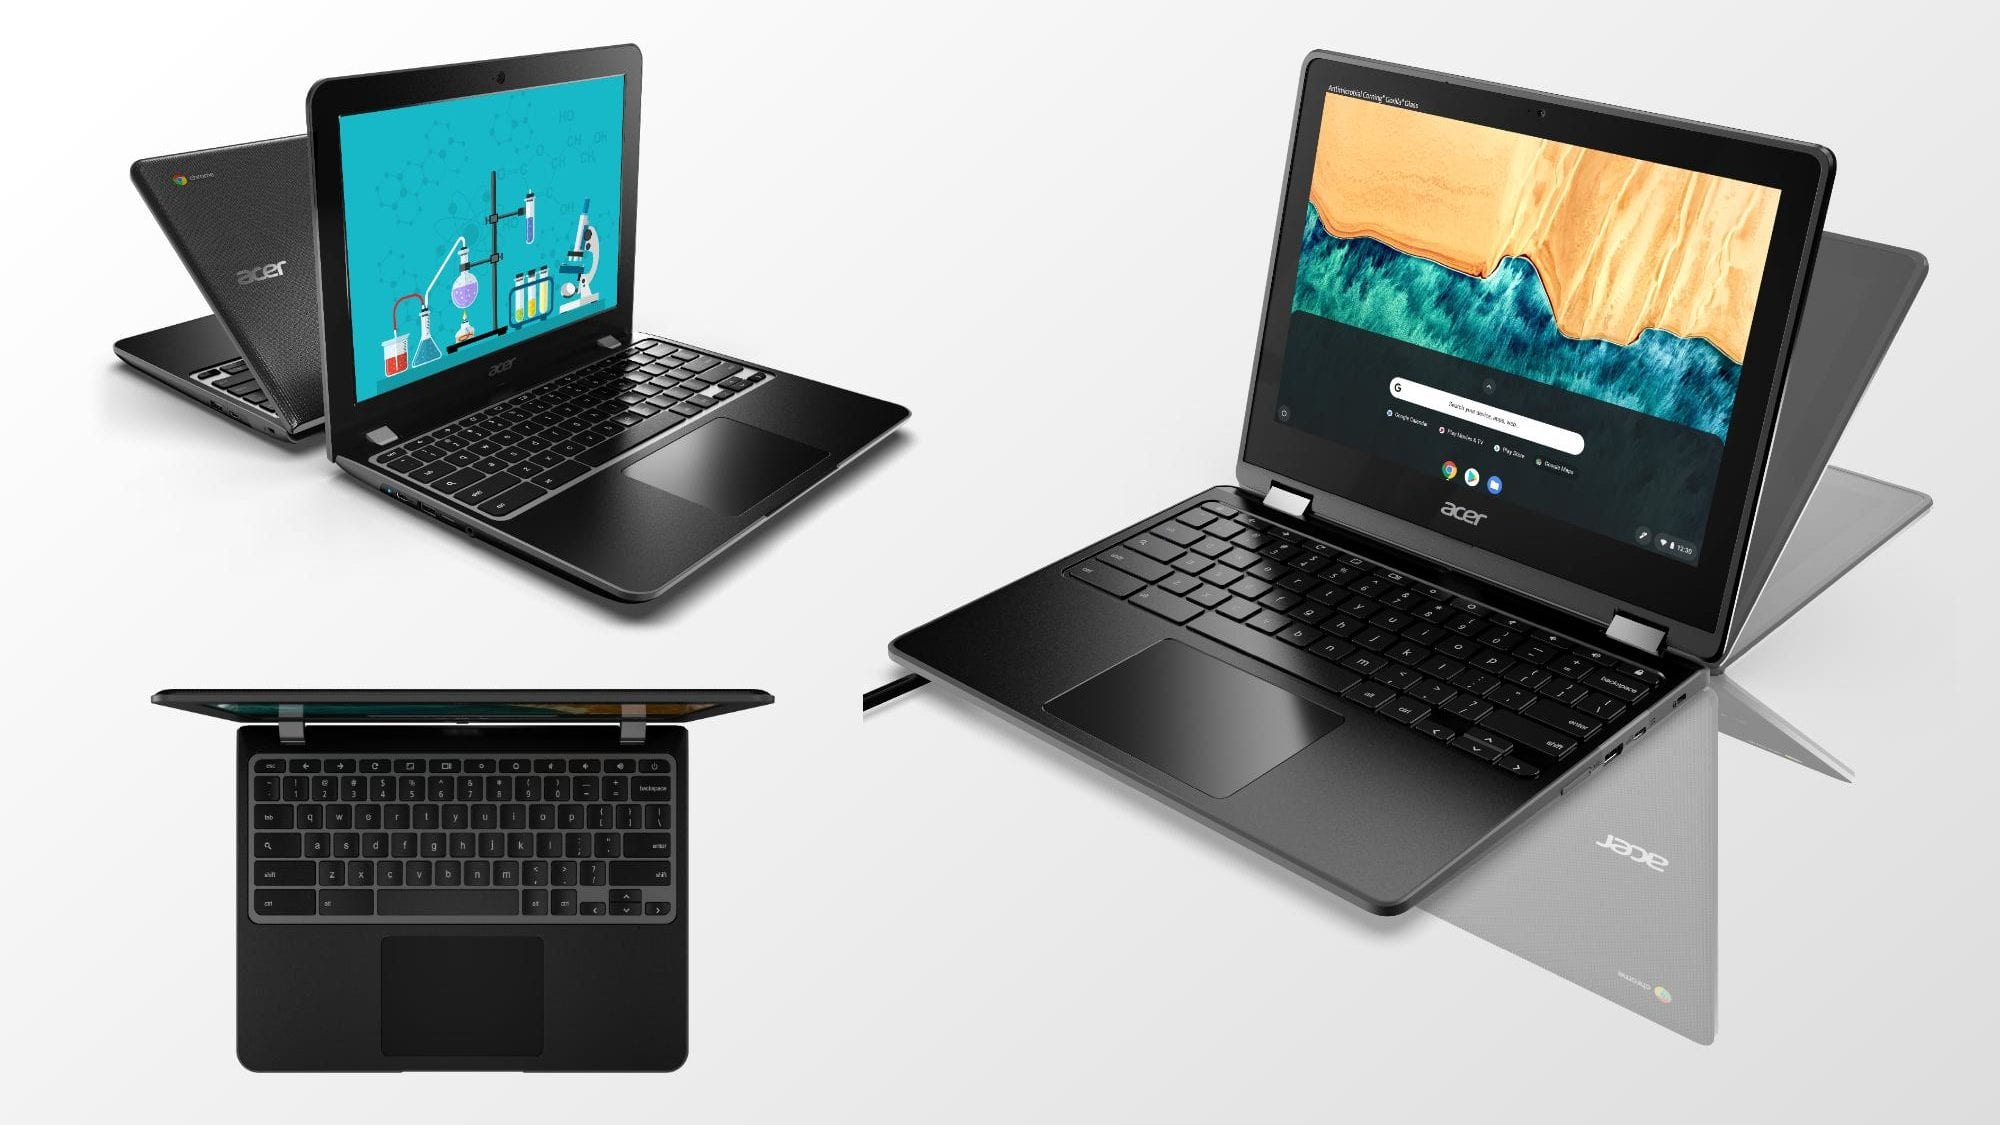 Two New 12-Inch EDU Chromebooks By Acer Bring an Exciting New Feature